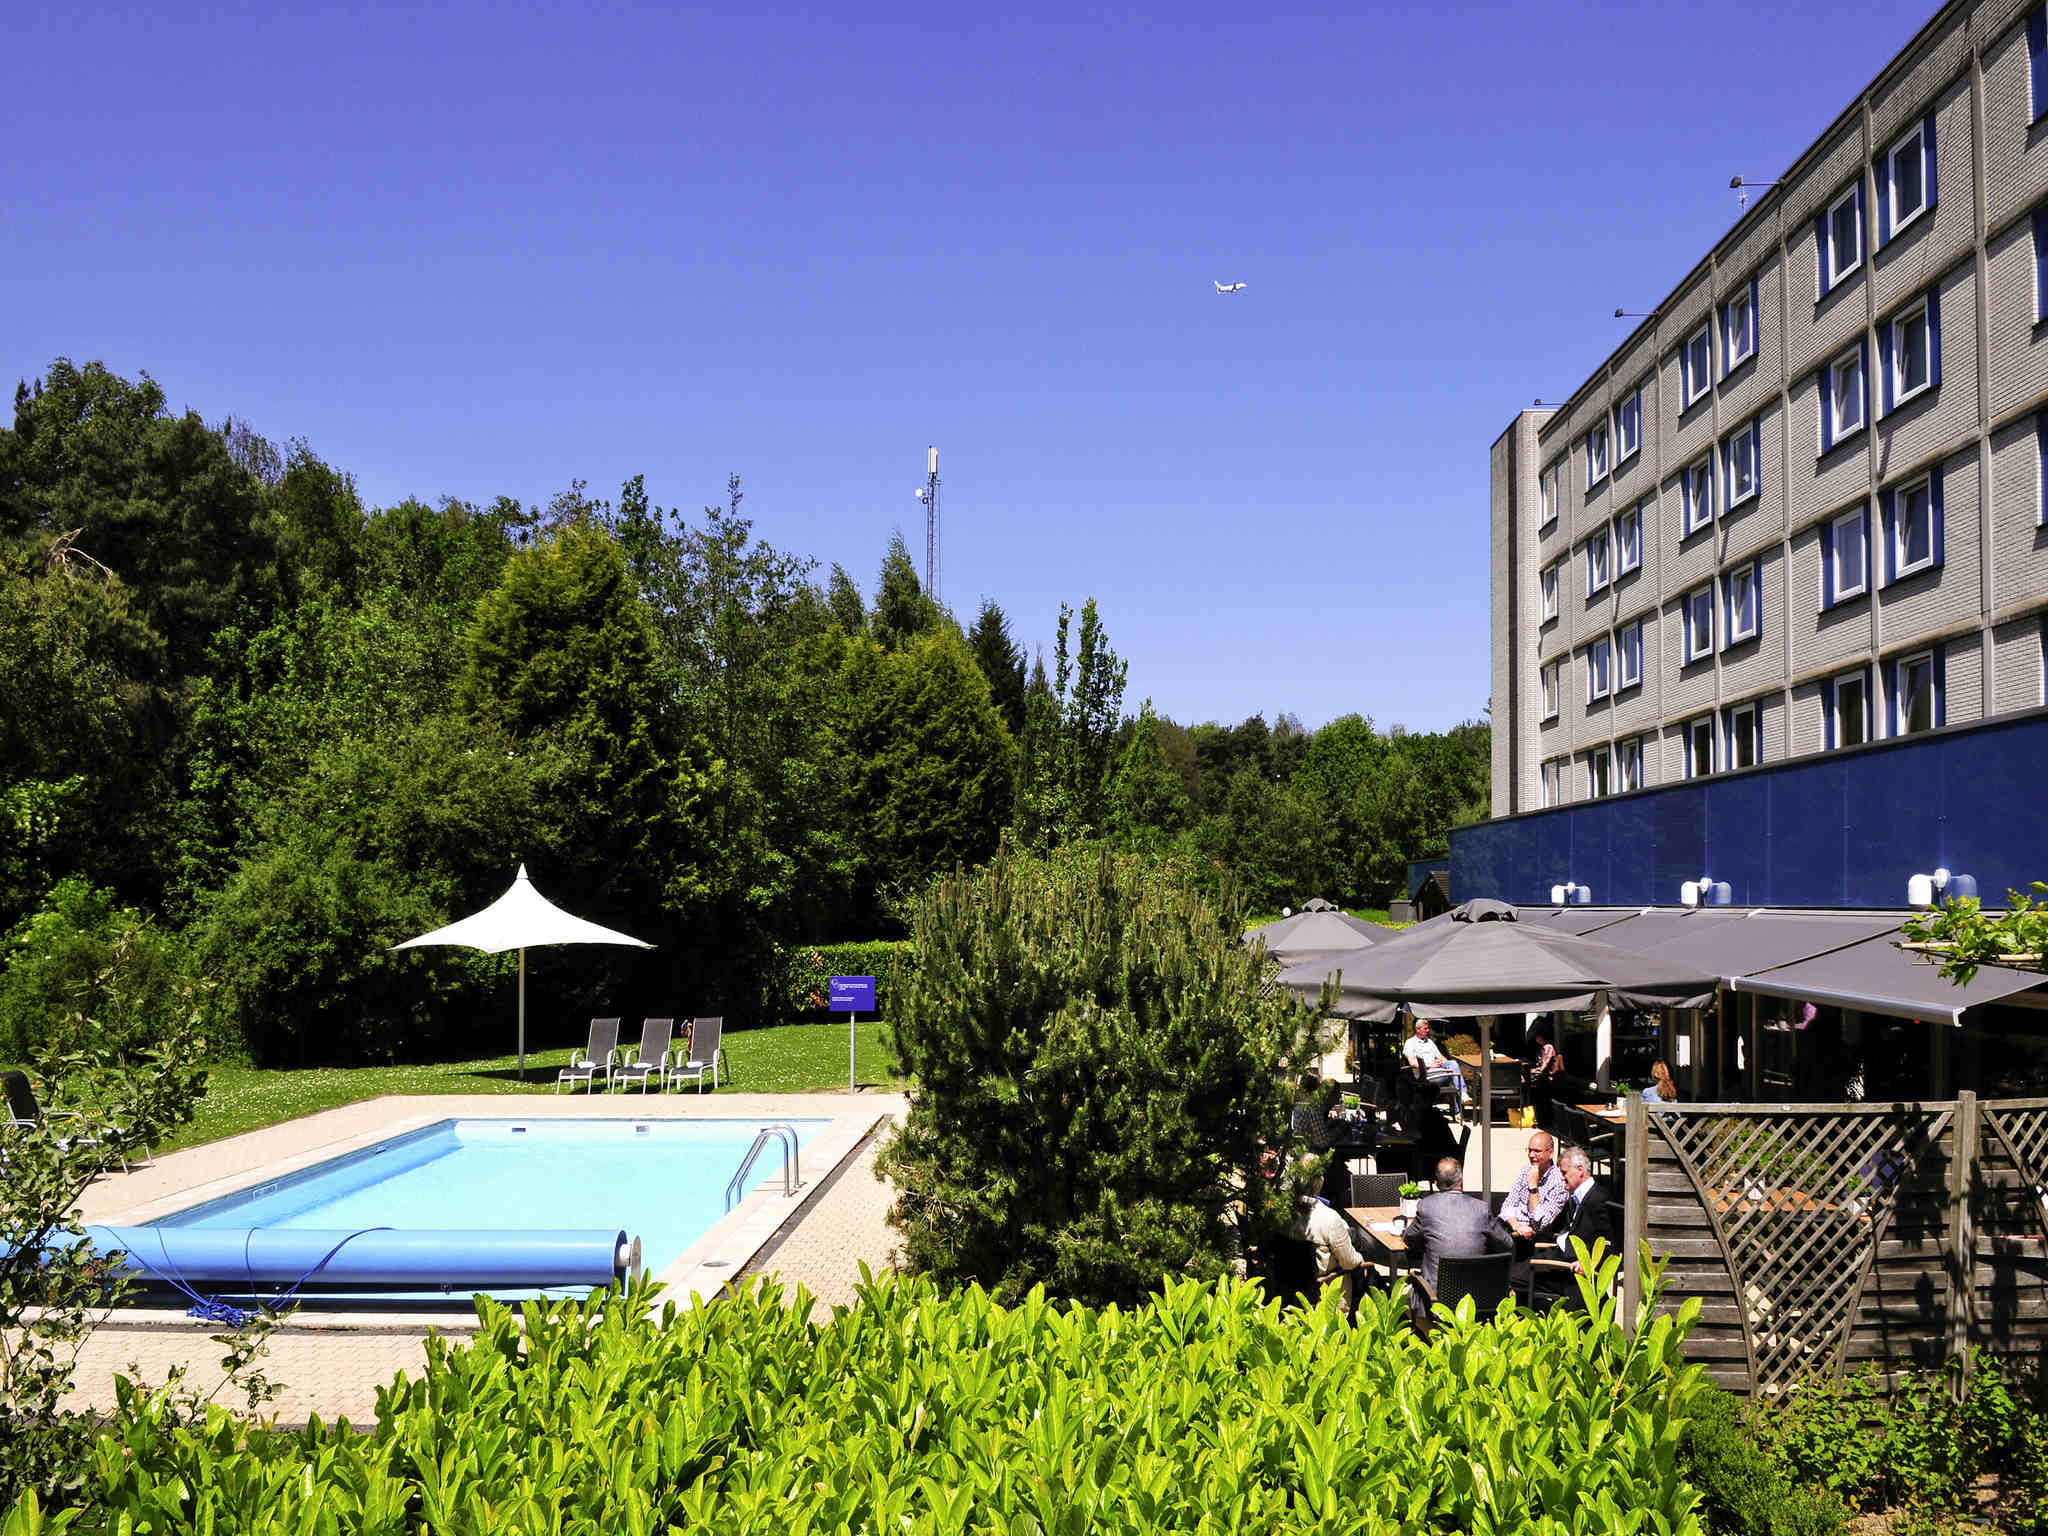 Badkamer Outlet Eindhoven : Family hotel eindhoven novotel near eindhoven airport